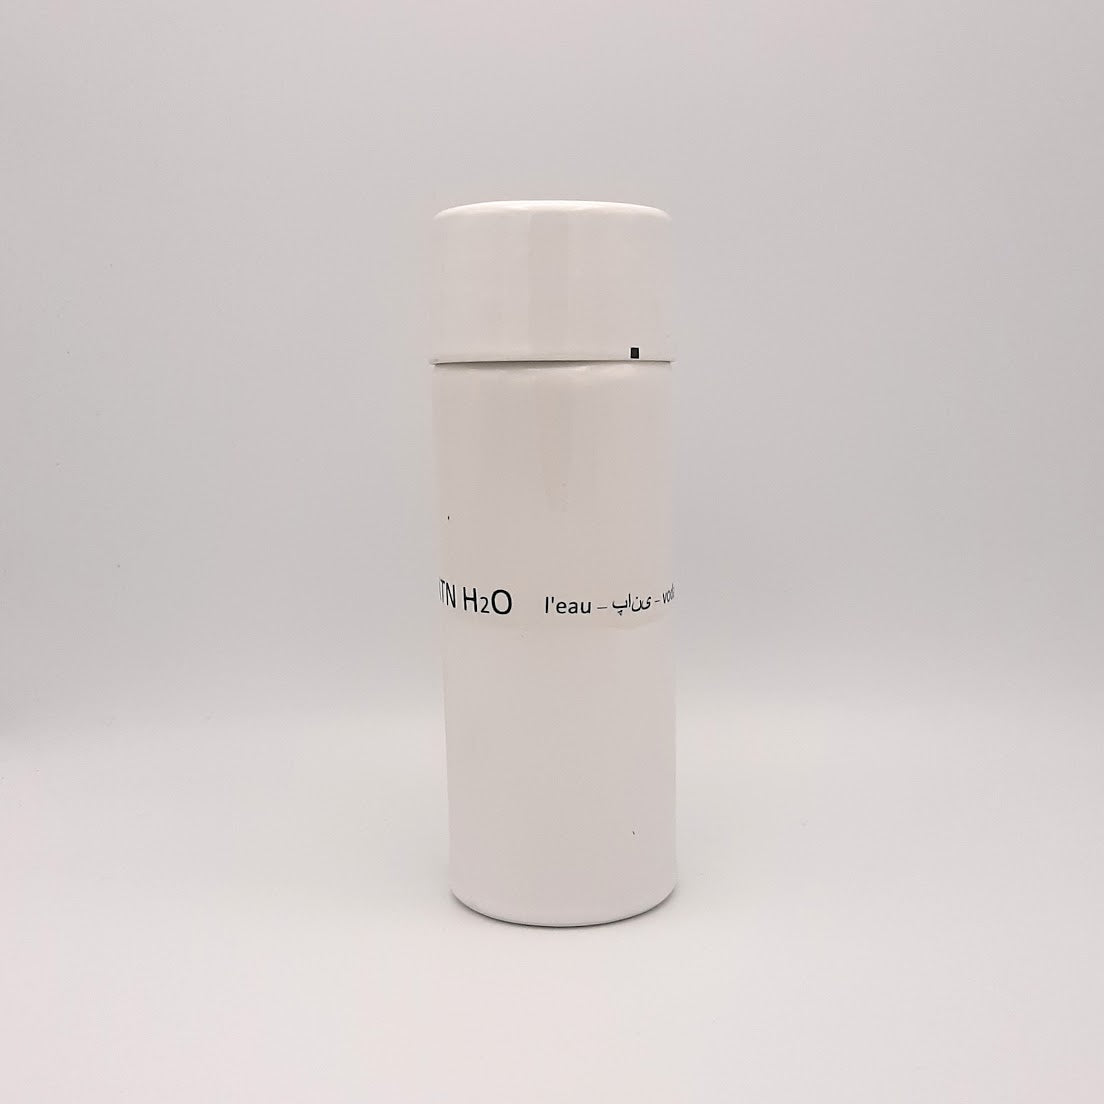 Kaolin - Guðný Magnúsdóttir - H2o WATER KARAFE - are designed in remembrance of the importance of water for all living creatures, the text says water in different languages. ICE - a water bottle in two white glazes. The water bottle comes with a cap.